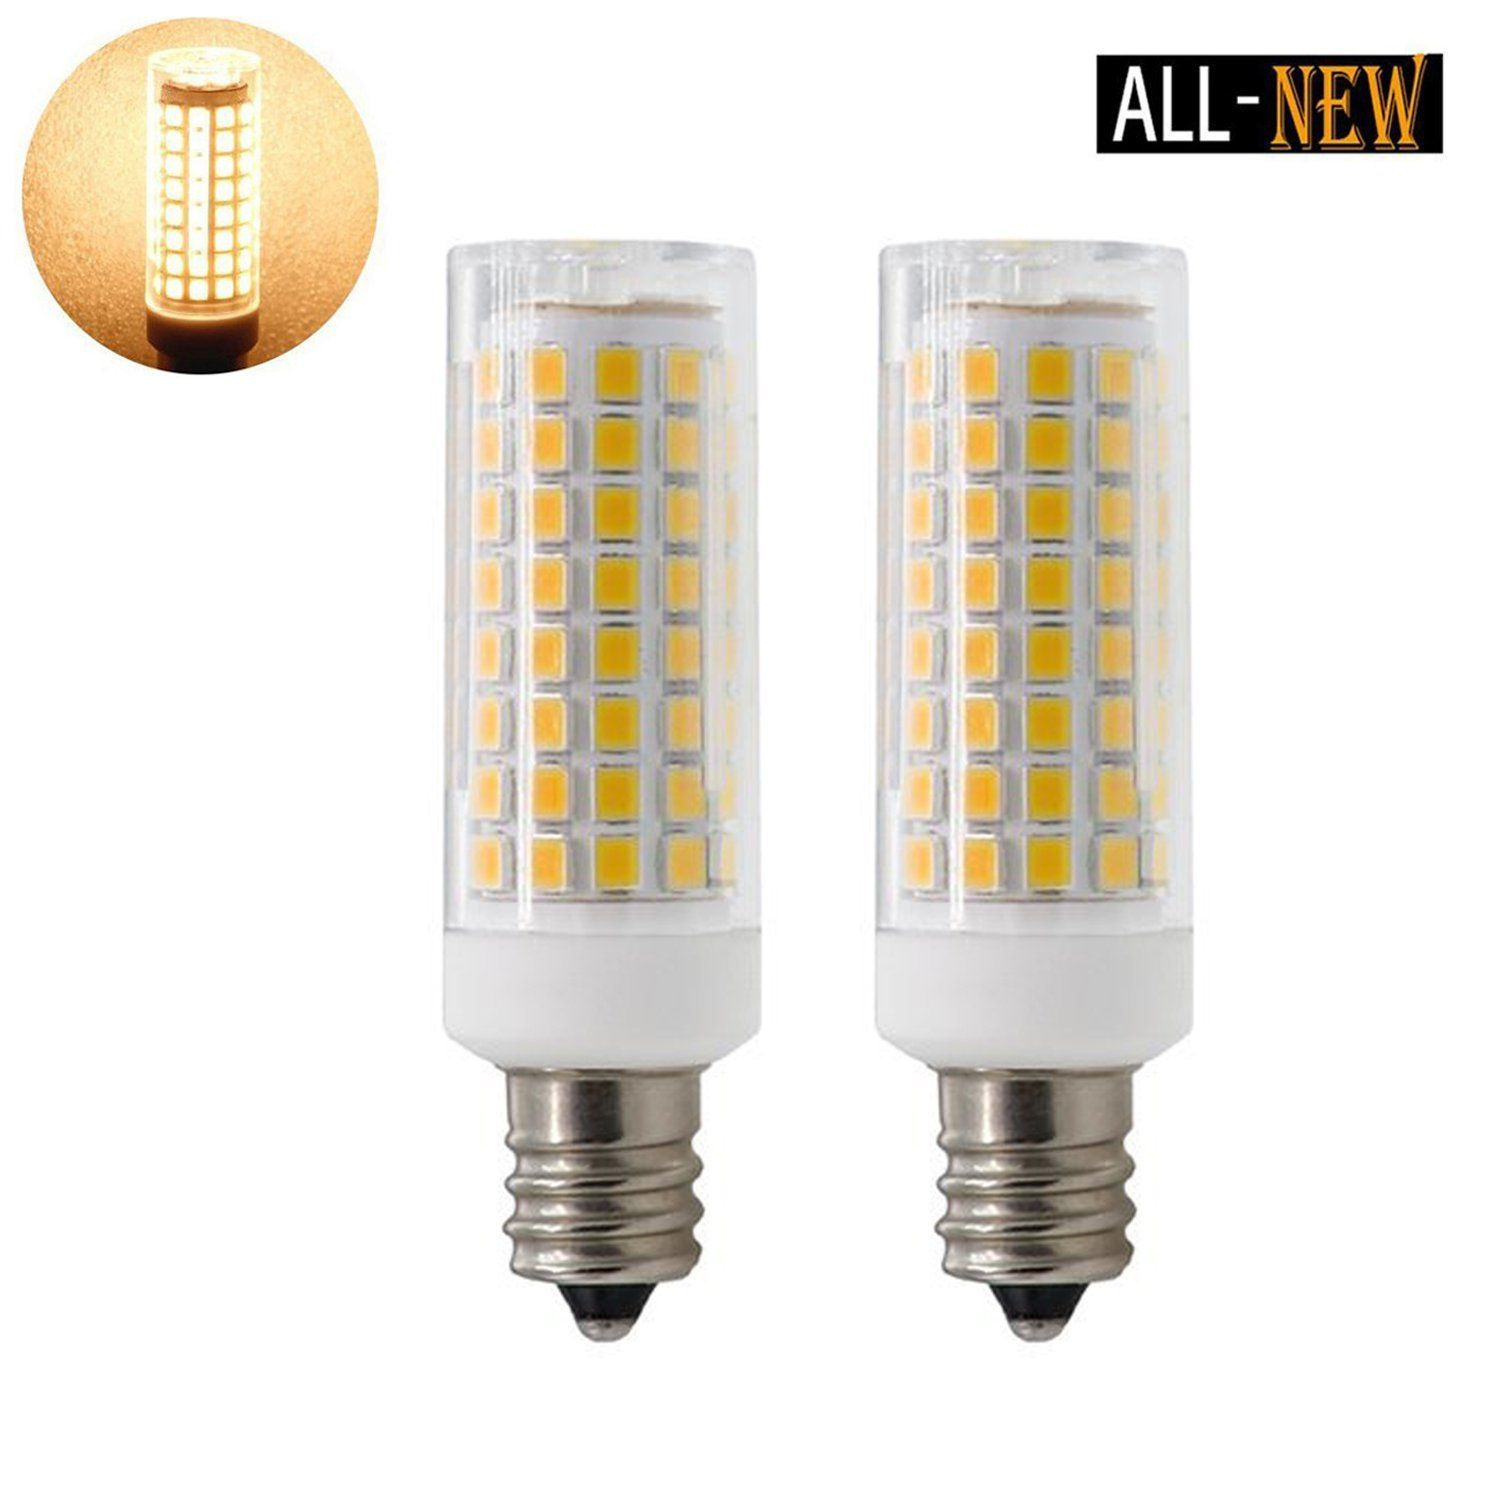 E12 Led Bulbs 75w 80w 100w Replacement 85w Halogen Bulbs Equivalent 850lm Dimmable E12 Led Light Bulbs Ac110v 120v 130 Volt Light Bulb Led Bulb Led Light Bulbs